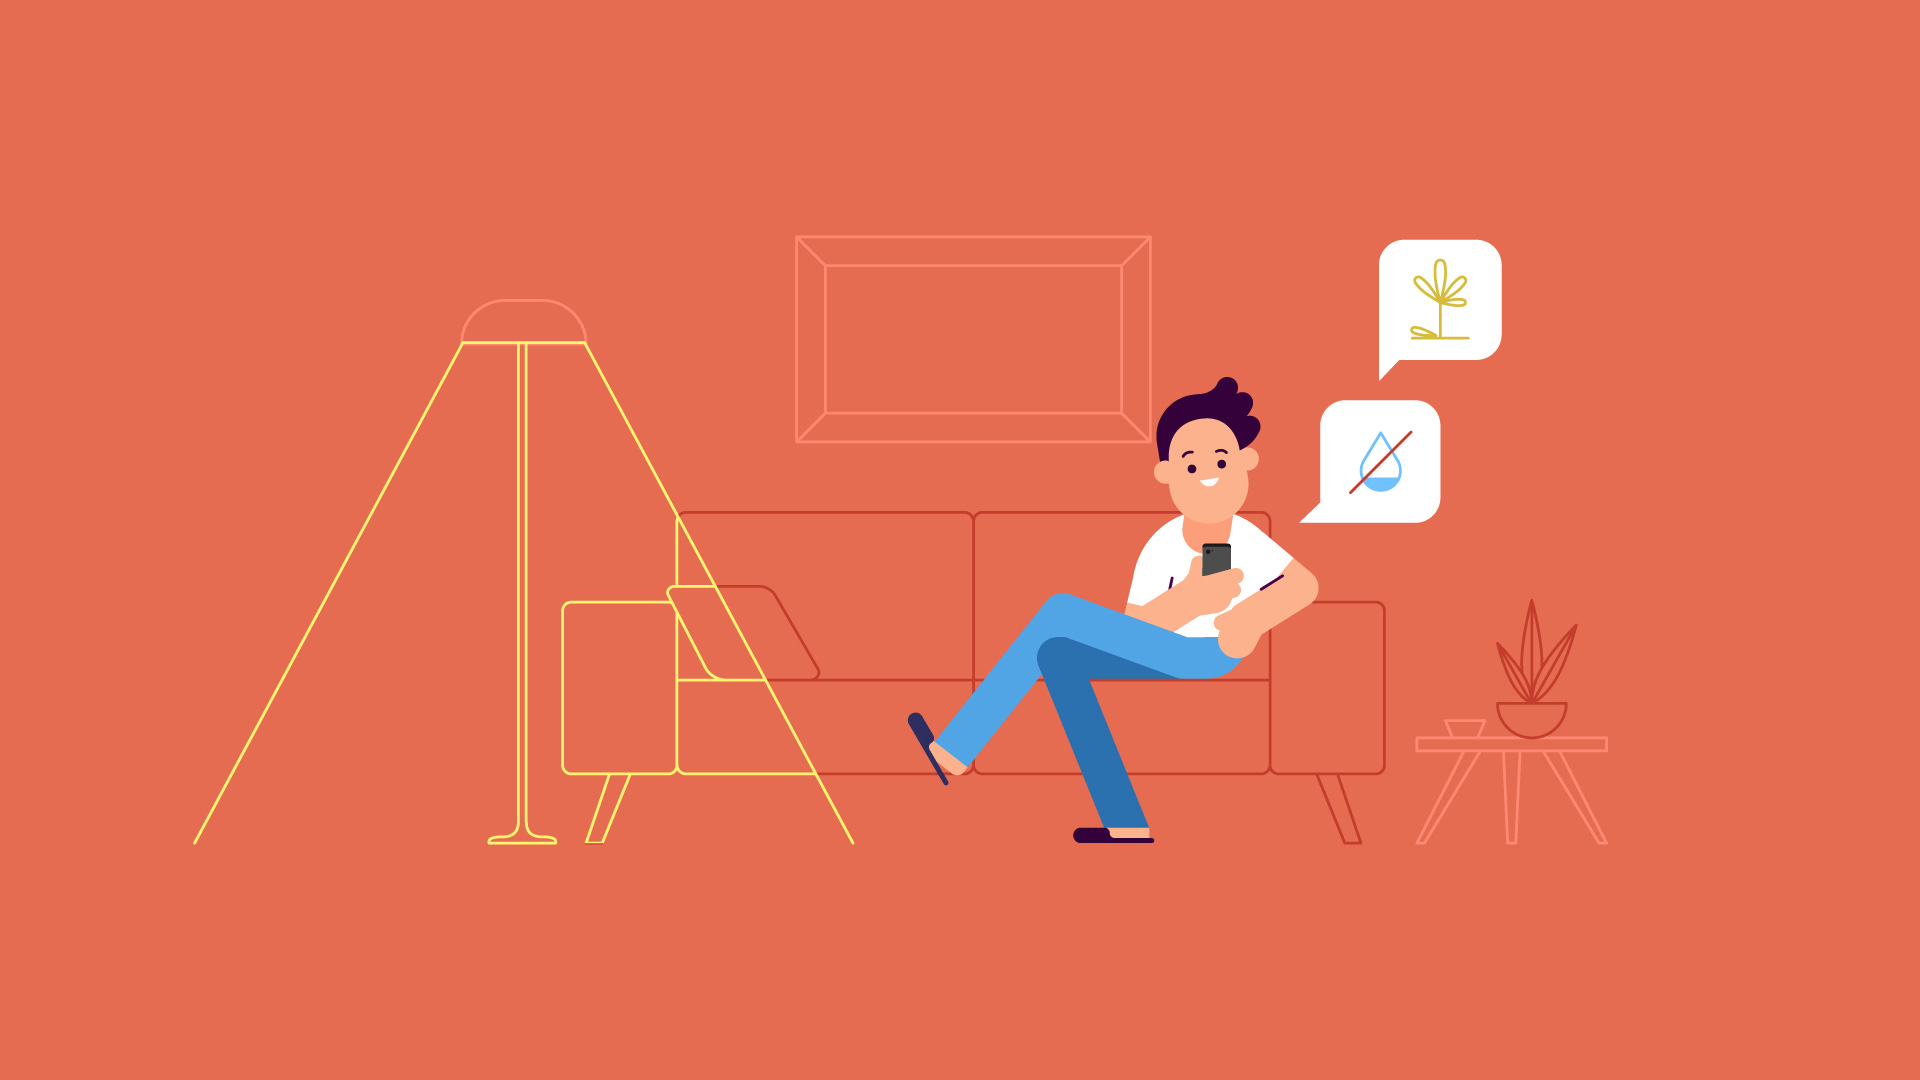 Illustration of a person sitting on a sofa looking at his phone